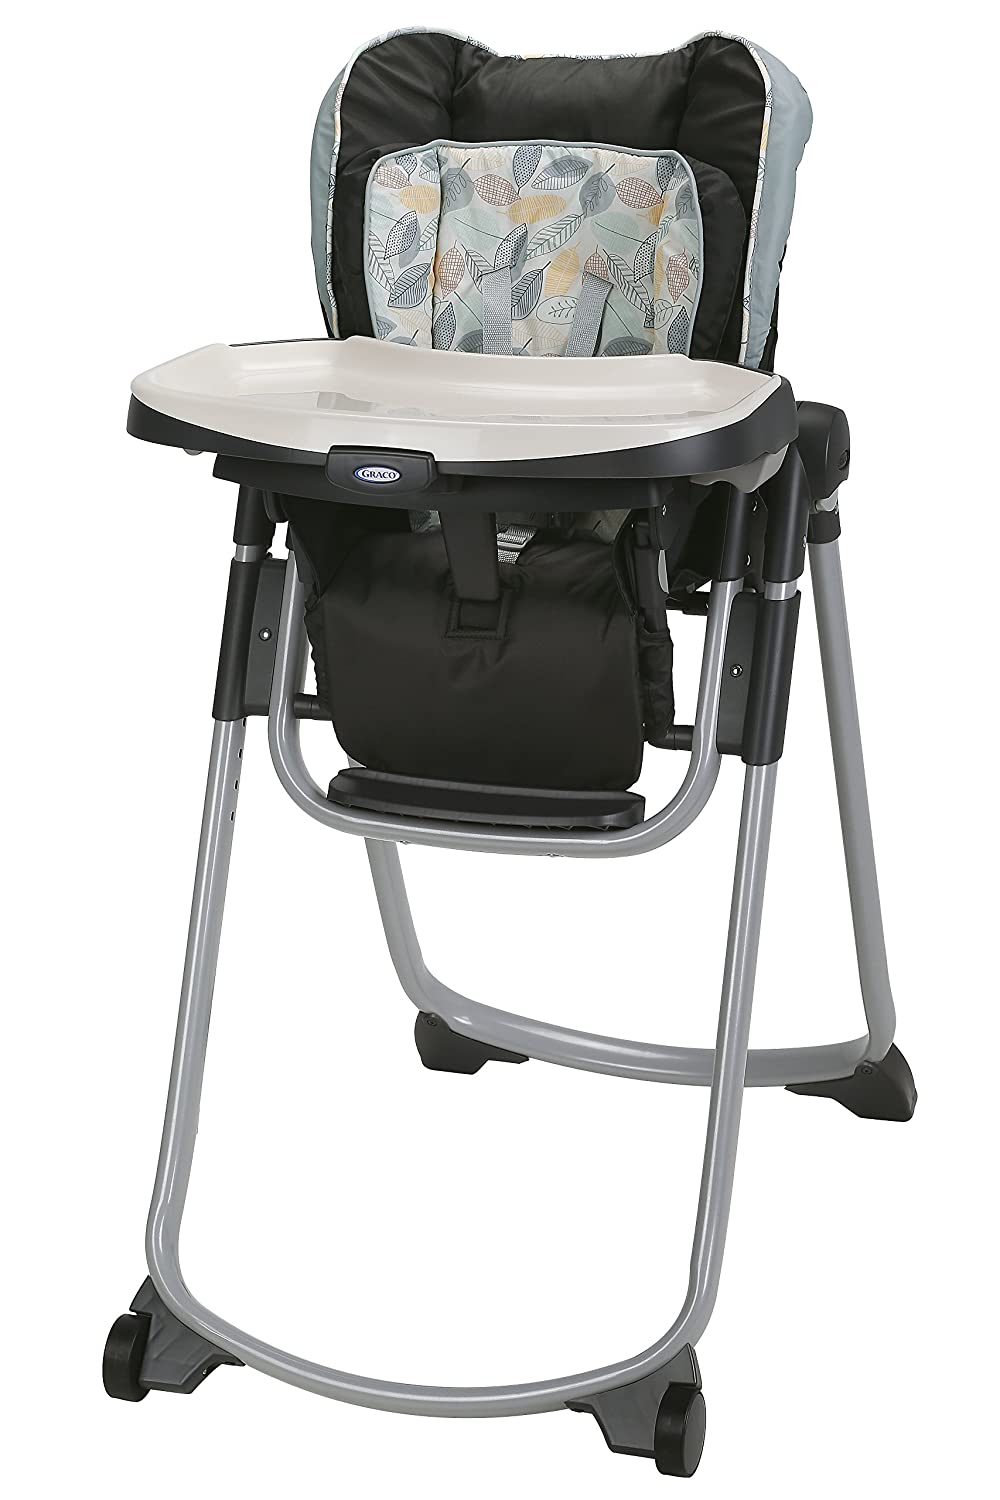 Amazon.com: Graco Slim espacios – Silla alta plegable, Trail ...